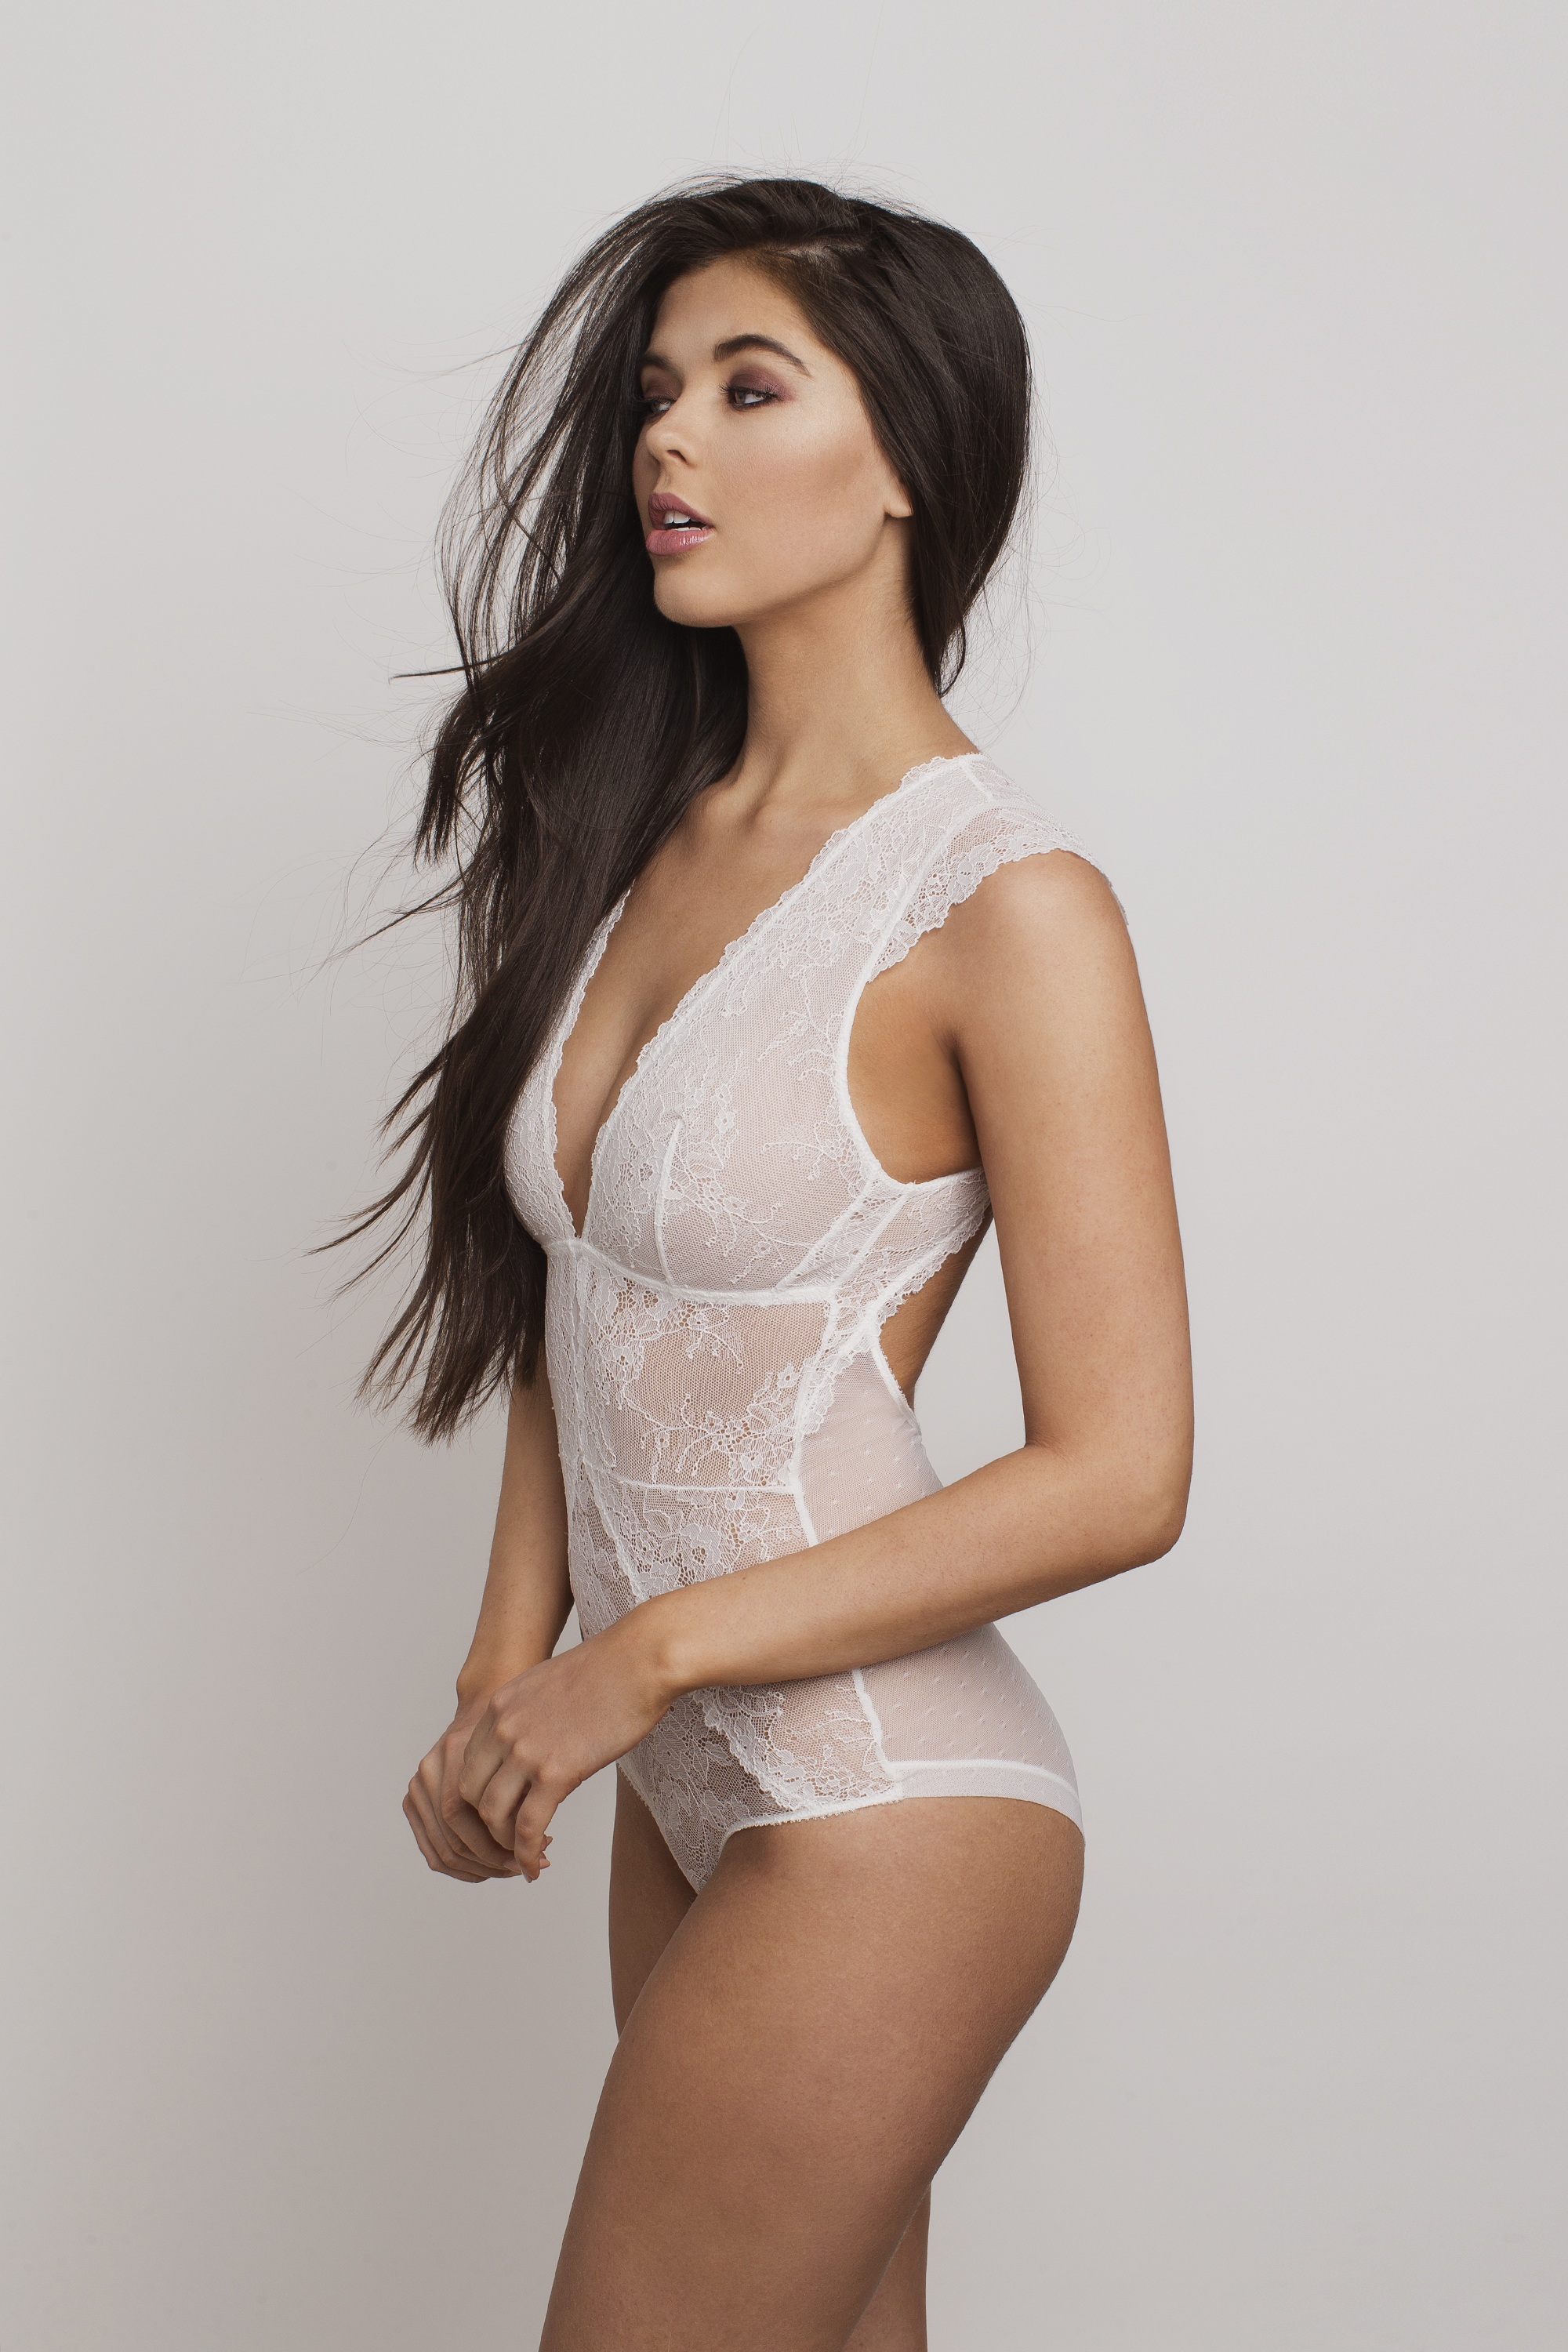 Seattle Lingerie E-commerce fashion photograper